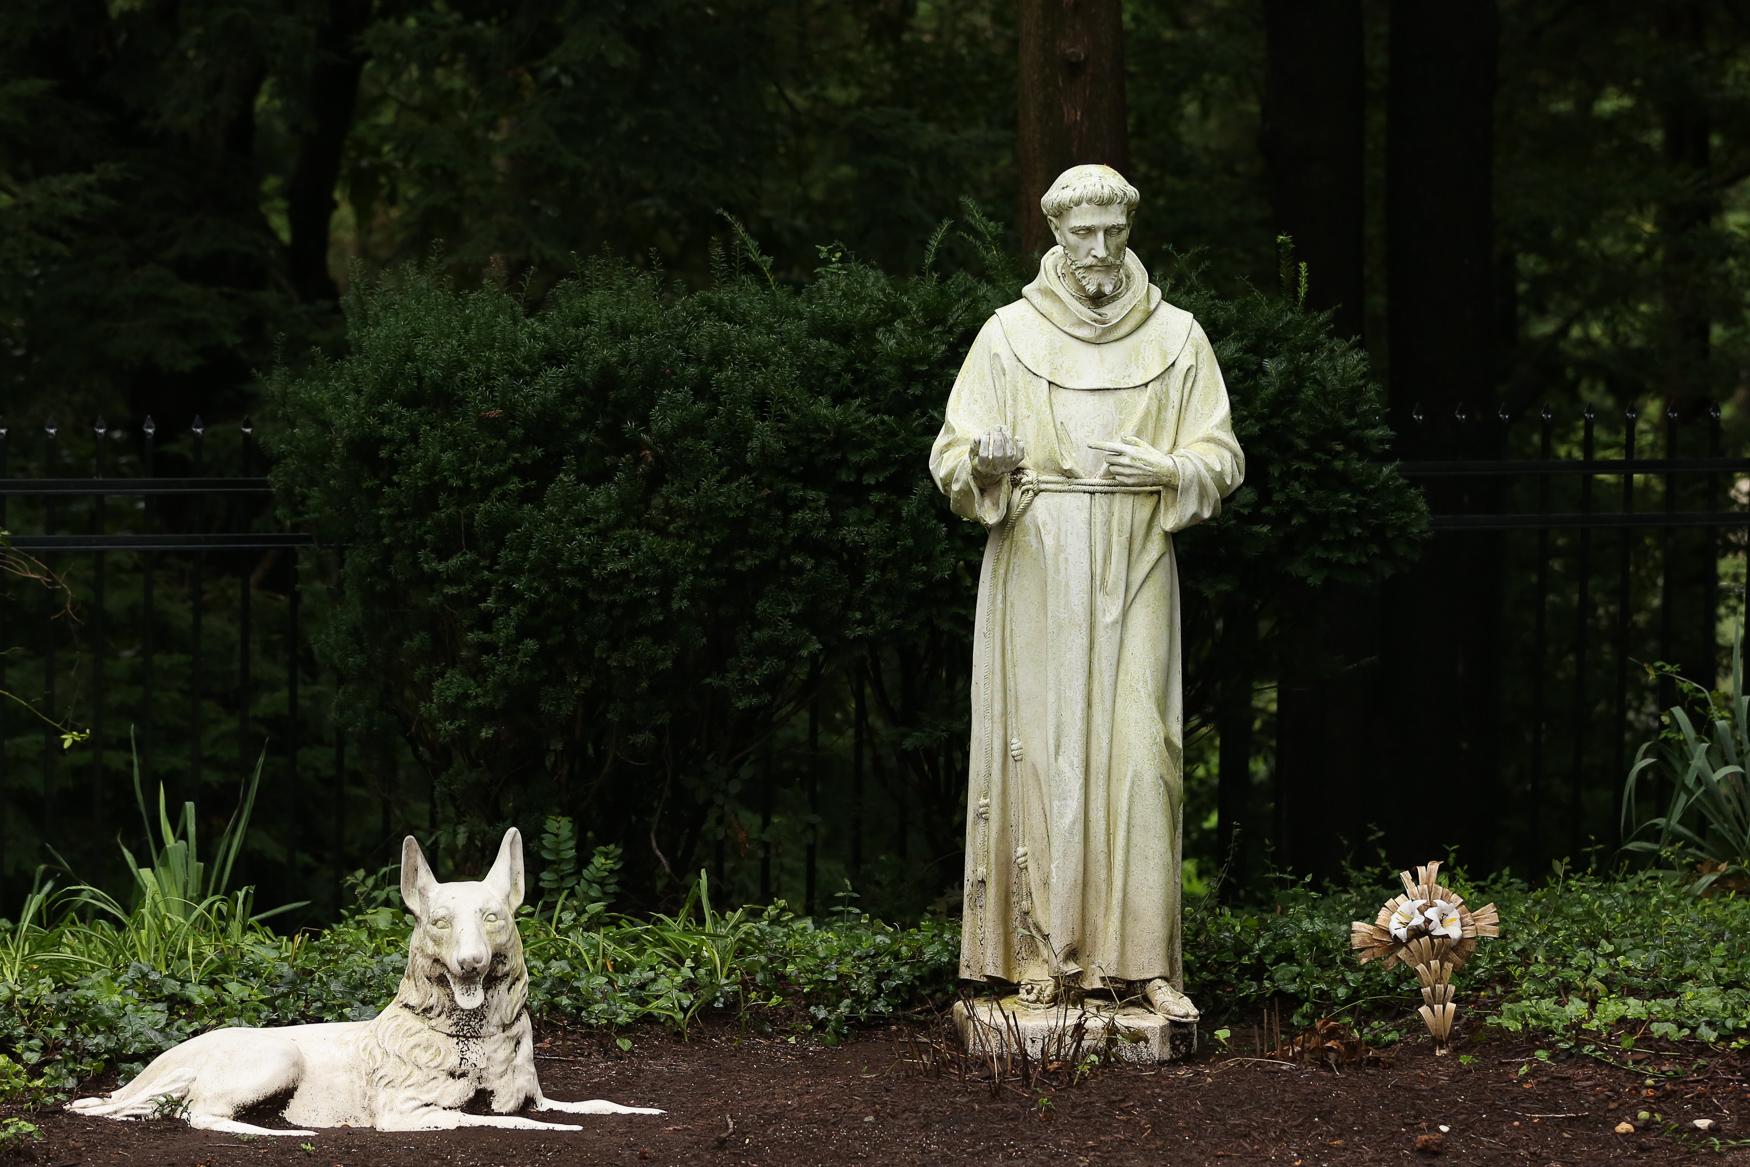 The monastery also has sweeping gardens and pay tributes to animals. Many Fransican orders trace their origins to Saint Francis of Assisi, who focused on the natural world. (Amanda Andrade-Rhoades/DC Refined)<br>